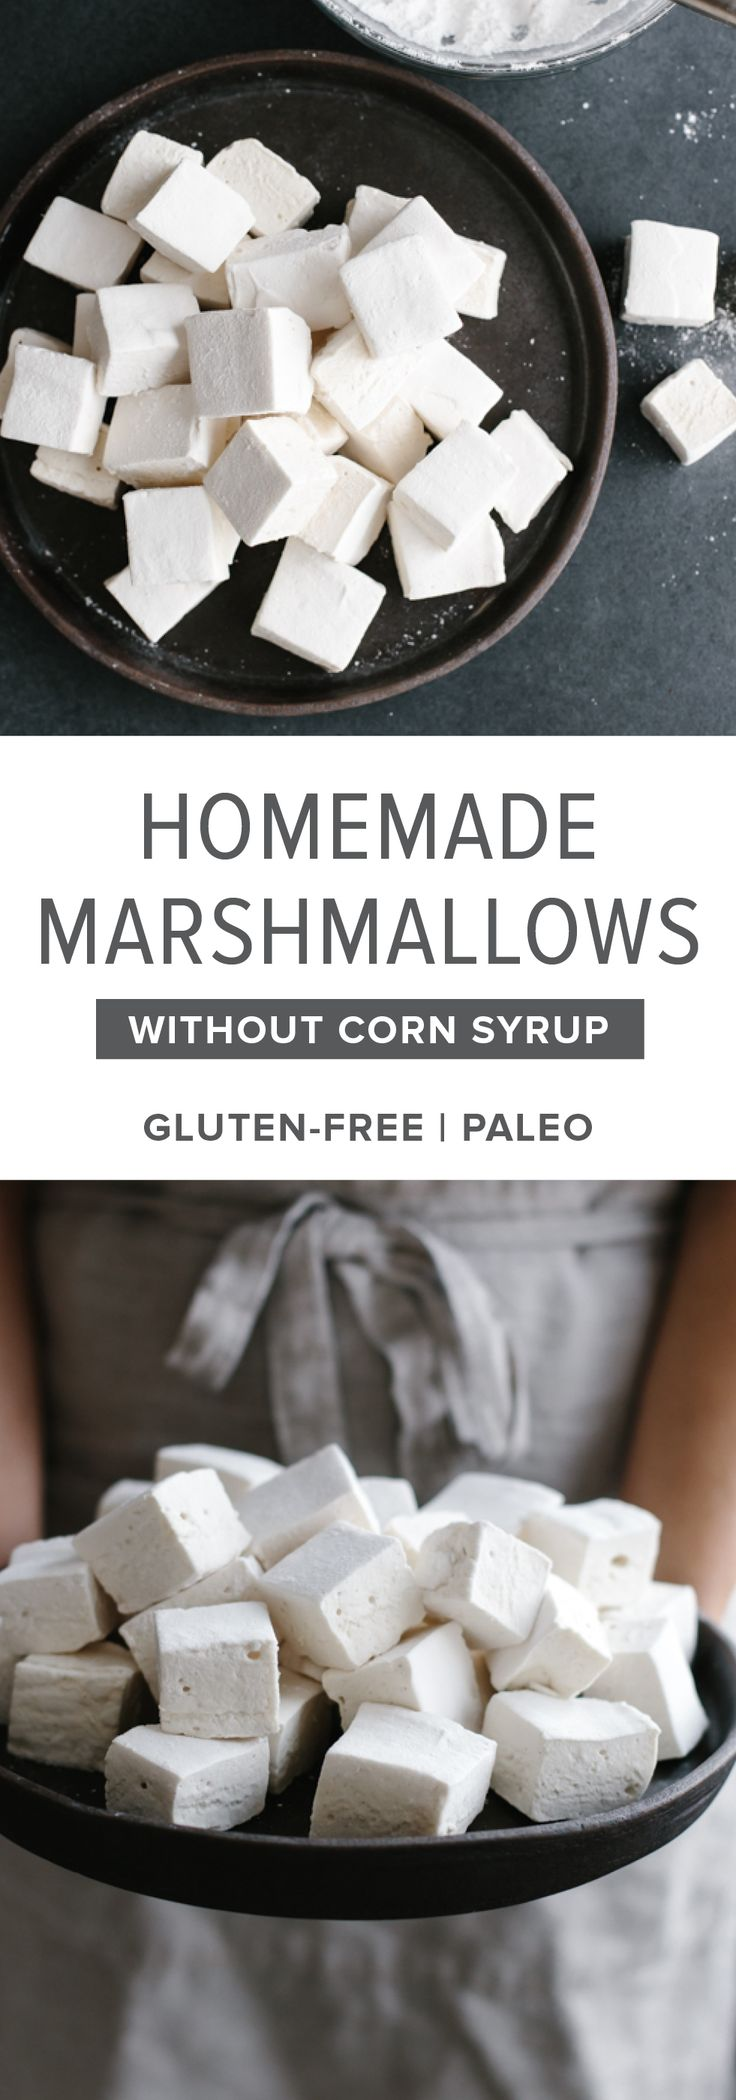 Healthy, paleo-friendly homemade marshmallows use honey or maple syrup instead of corn syrup and high-quality gelatin.